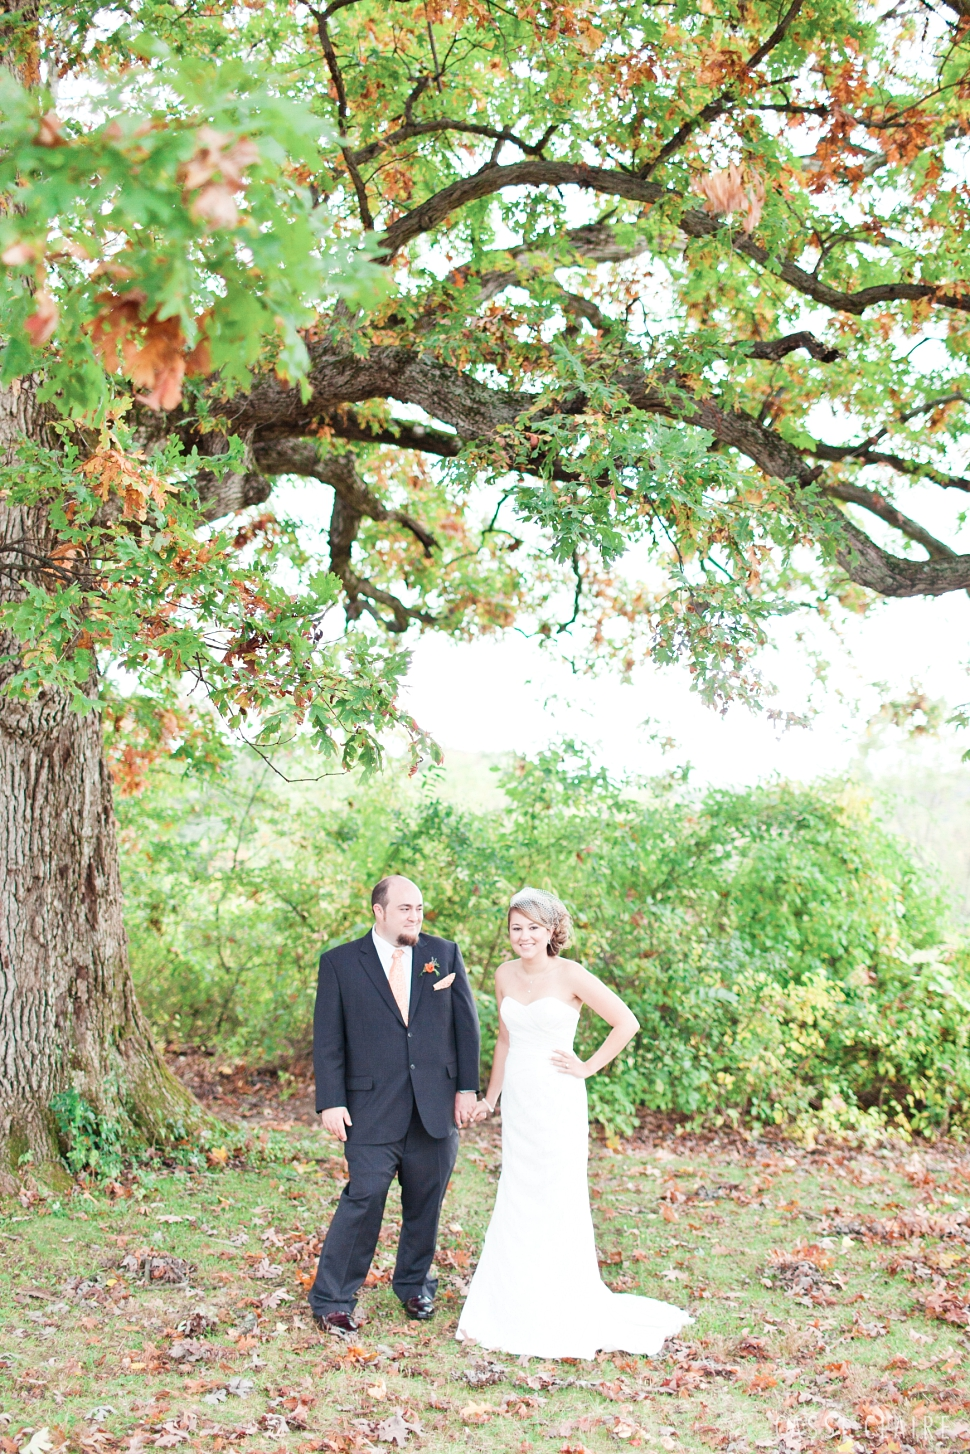 Warwick-Wedding-Photos_CassiClaire_12.jpg